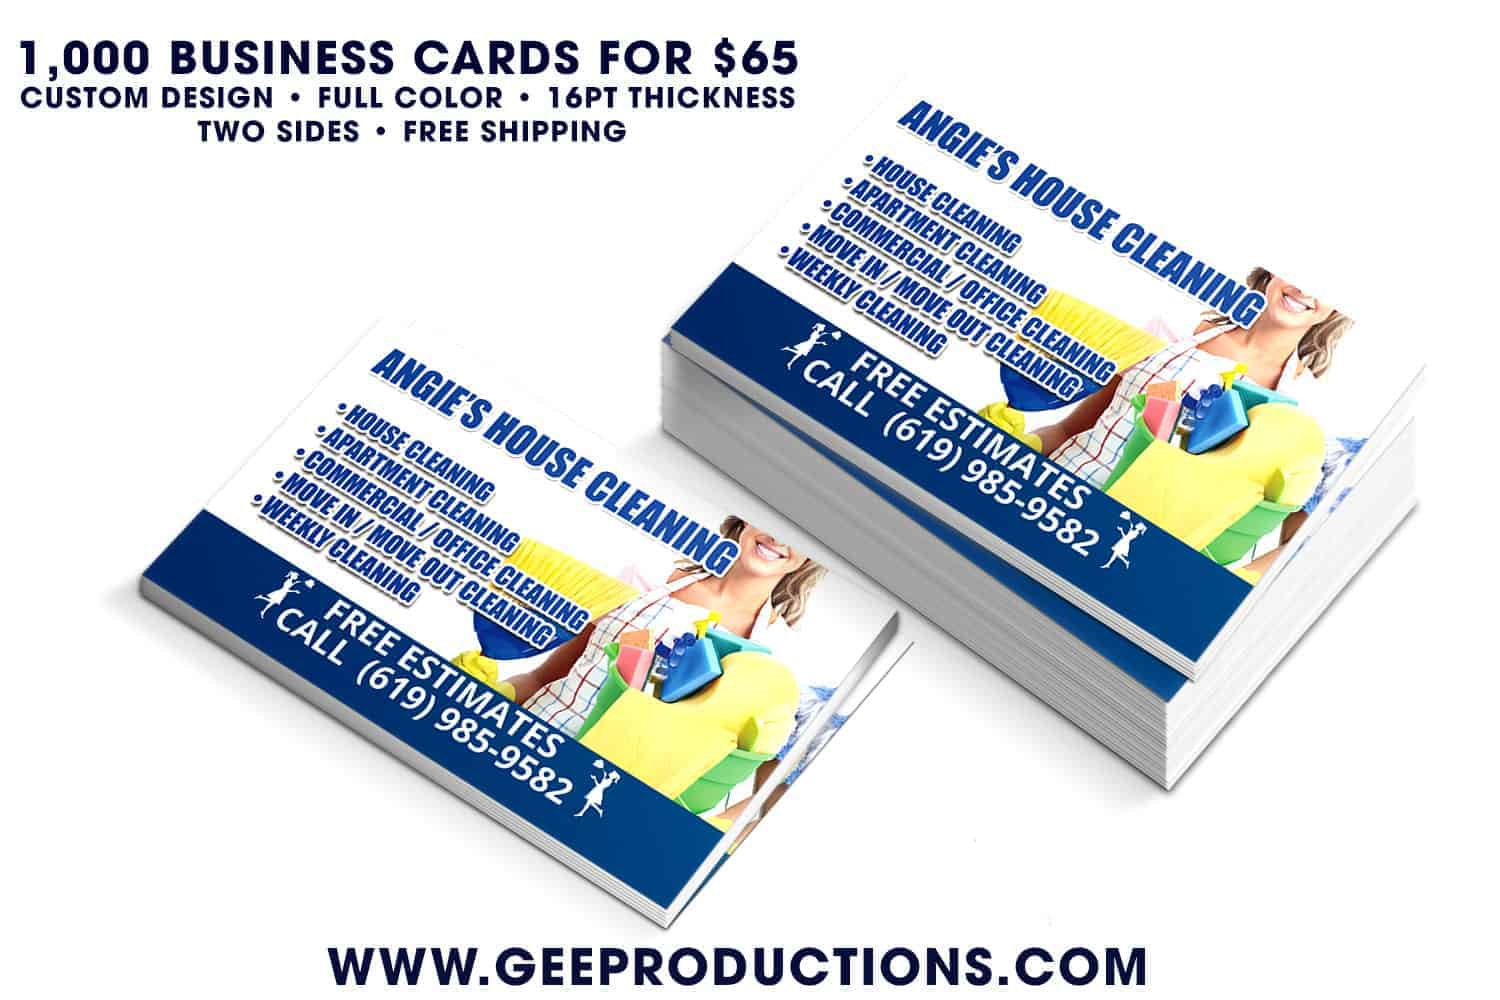 Angies house cleaning business cards angies house cleaning business cards colourmoves